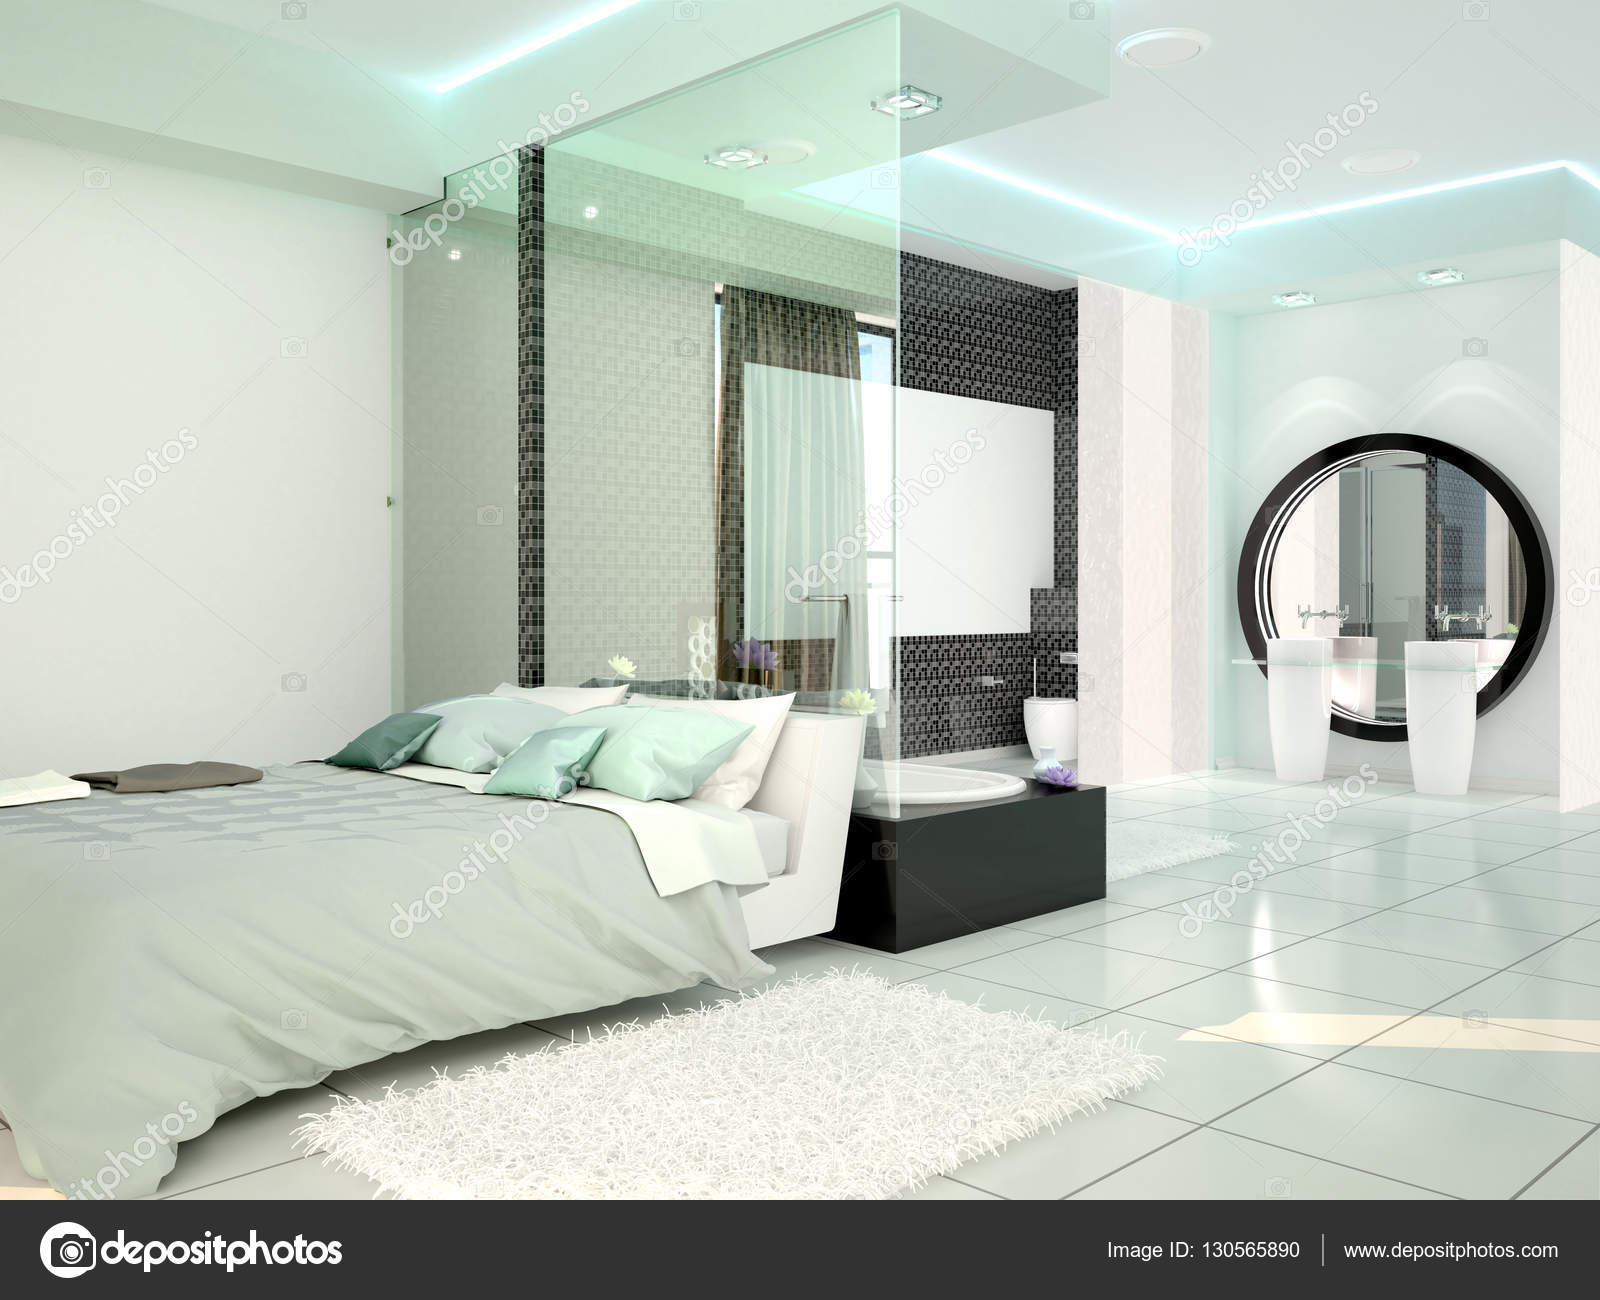 Bedroom With Bathroom In A Modern High Tech Style. 3d Illustrati U2014 Stock  Photo